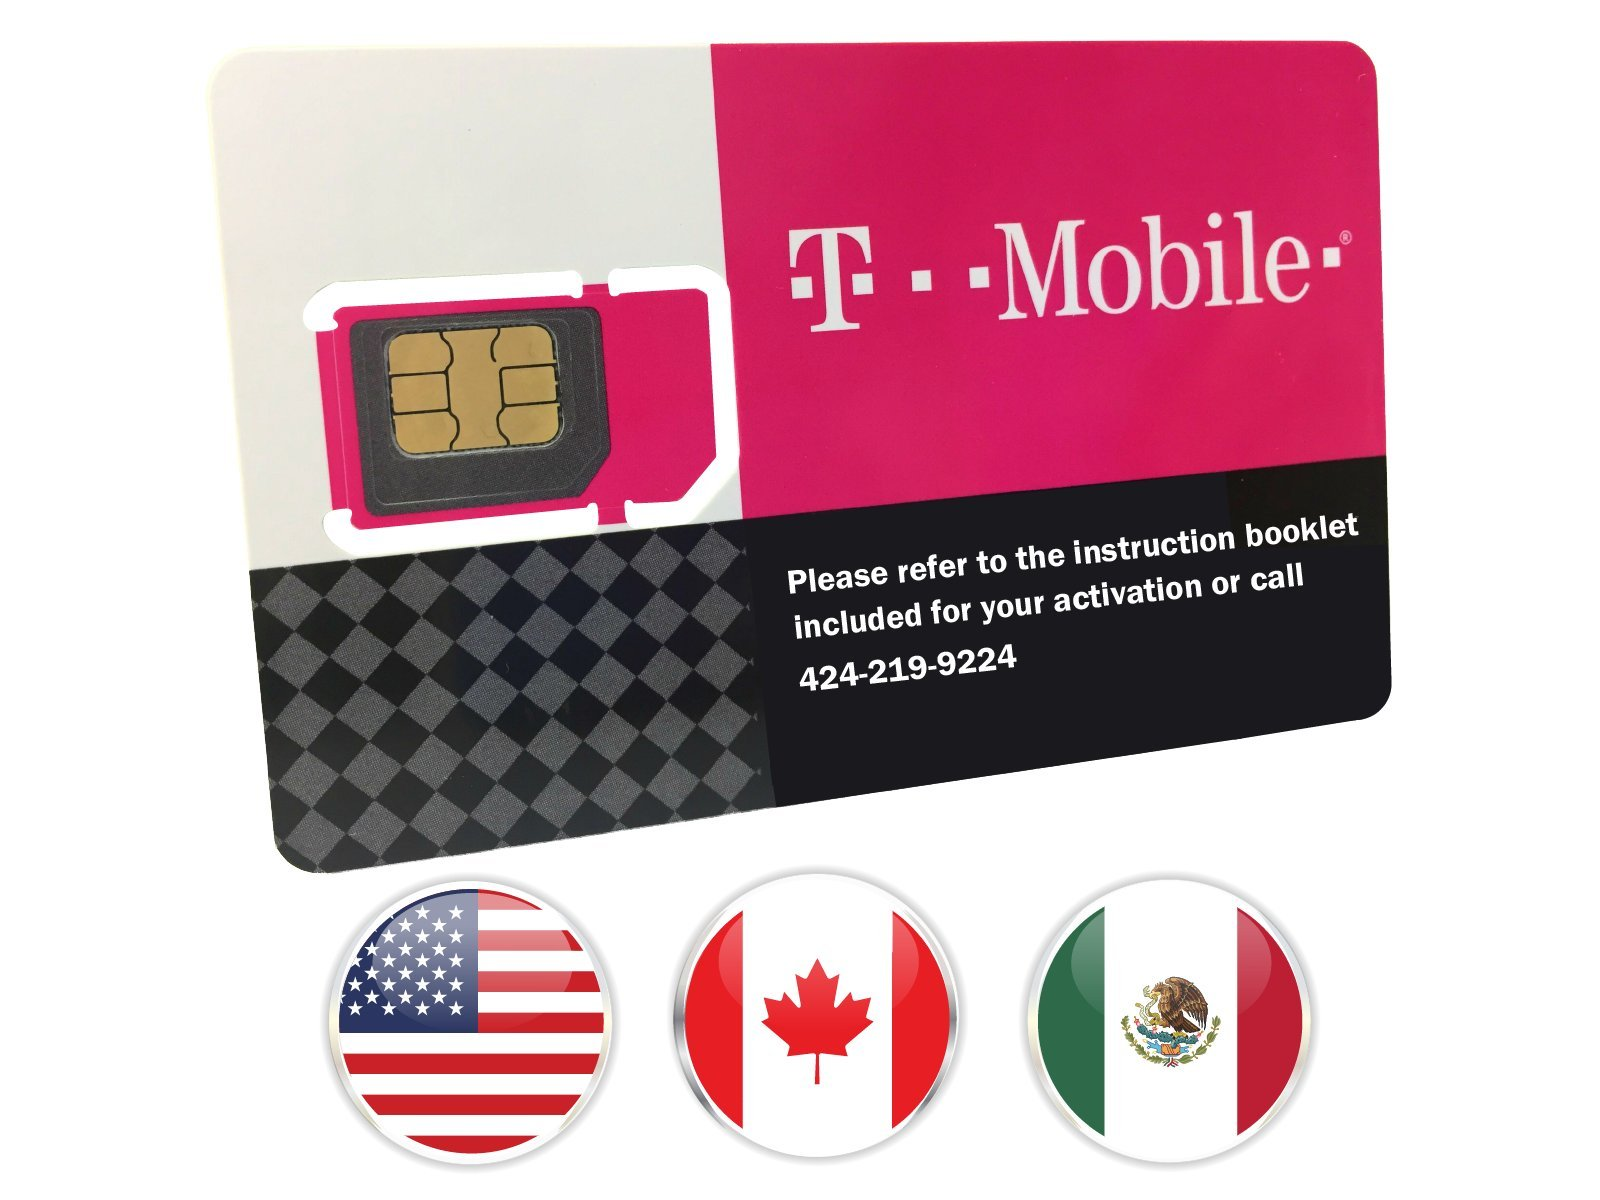 T-Mobile Prepaid SIM Card Unlimited Talk, Text, and Data in USA with 5GB Data in Canada and Mexico for 7 days by T-Mobile